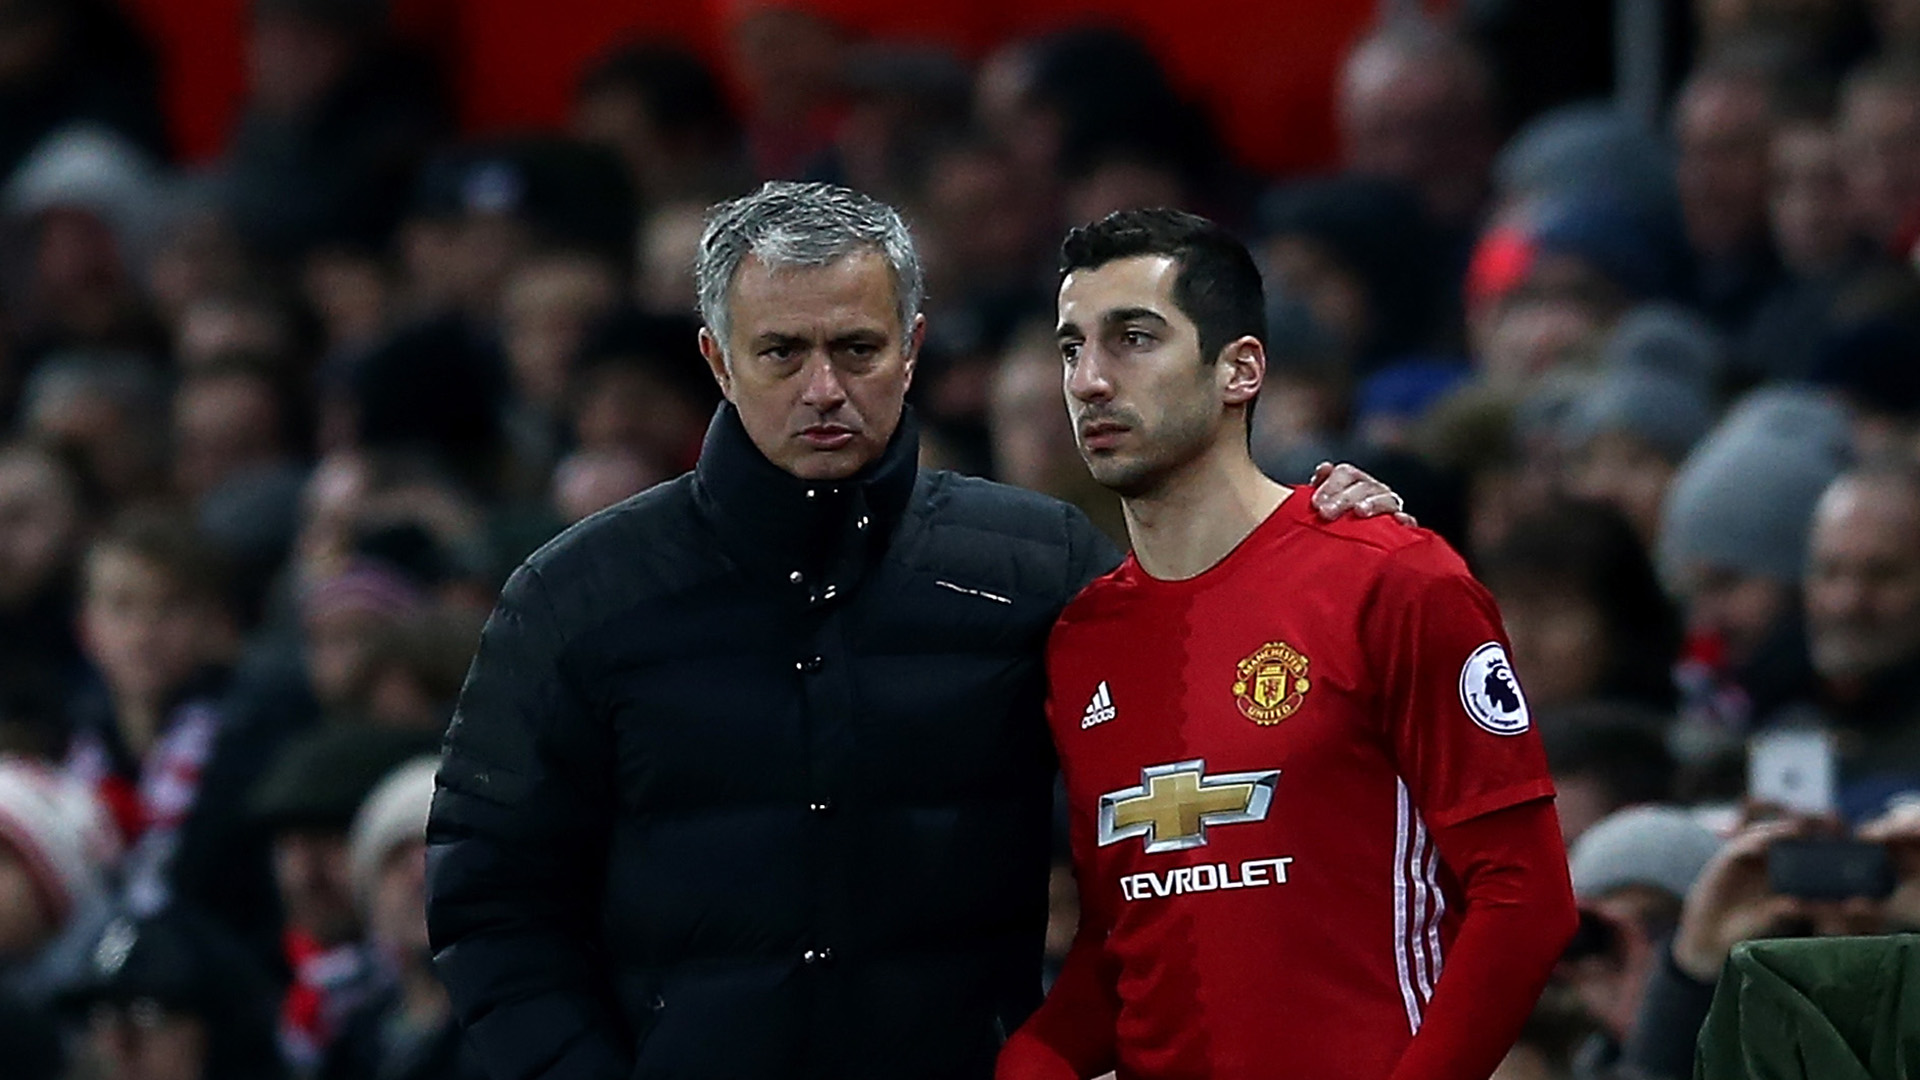 Mourinho suggests Mkhitaryan is leaving Manchester United